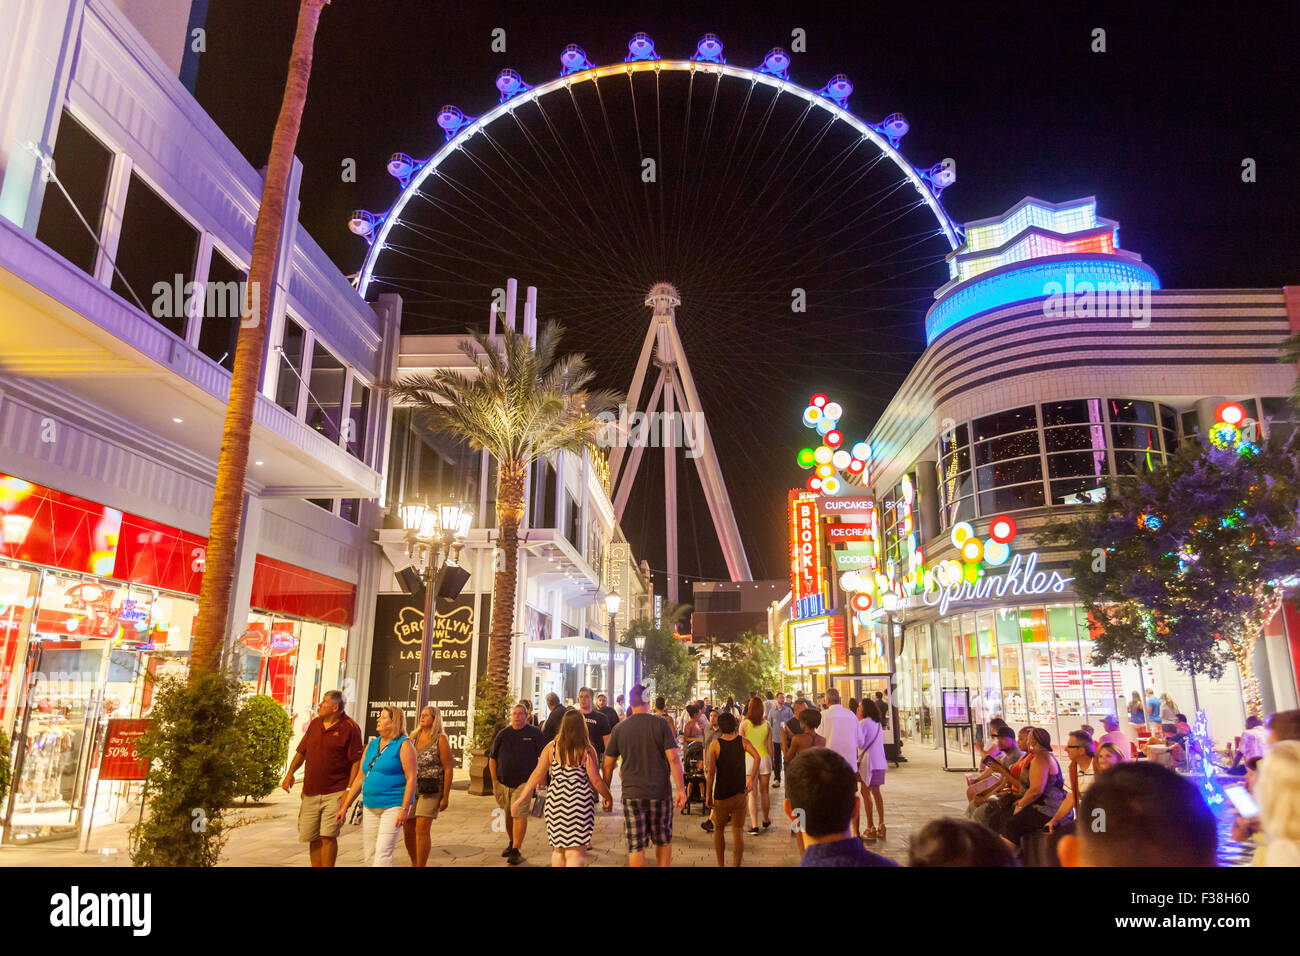 Une vue nocturne de la Grande Roue High Roller à Las Vegas, Nevada. Photo Stock